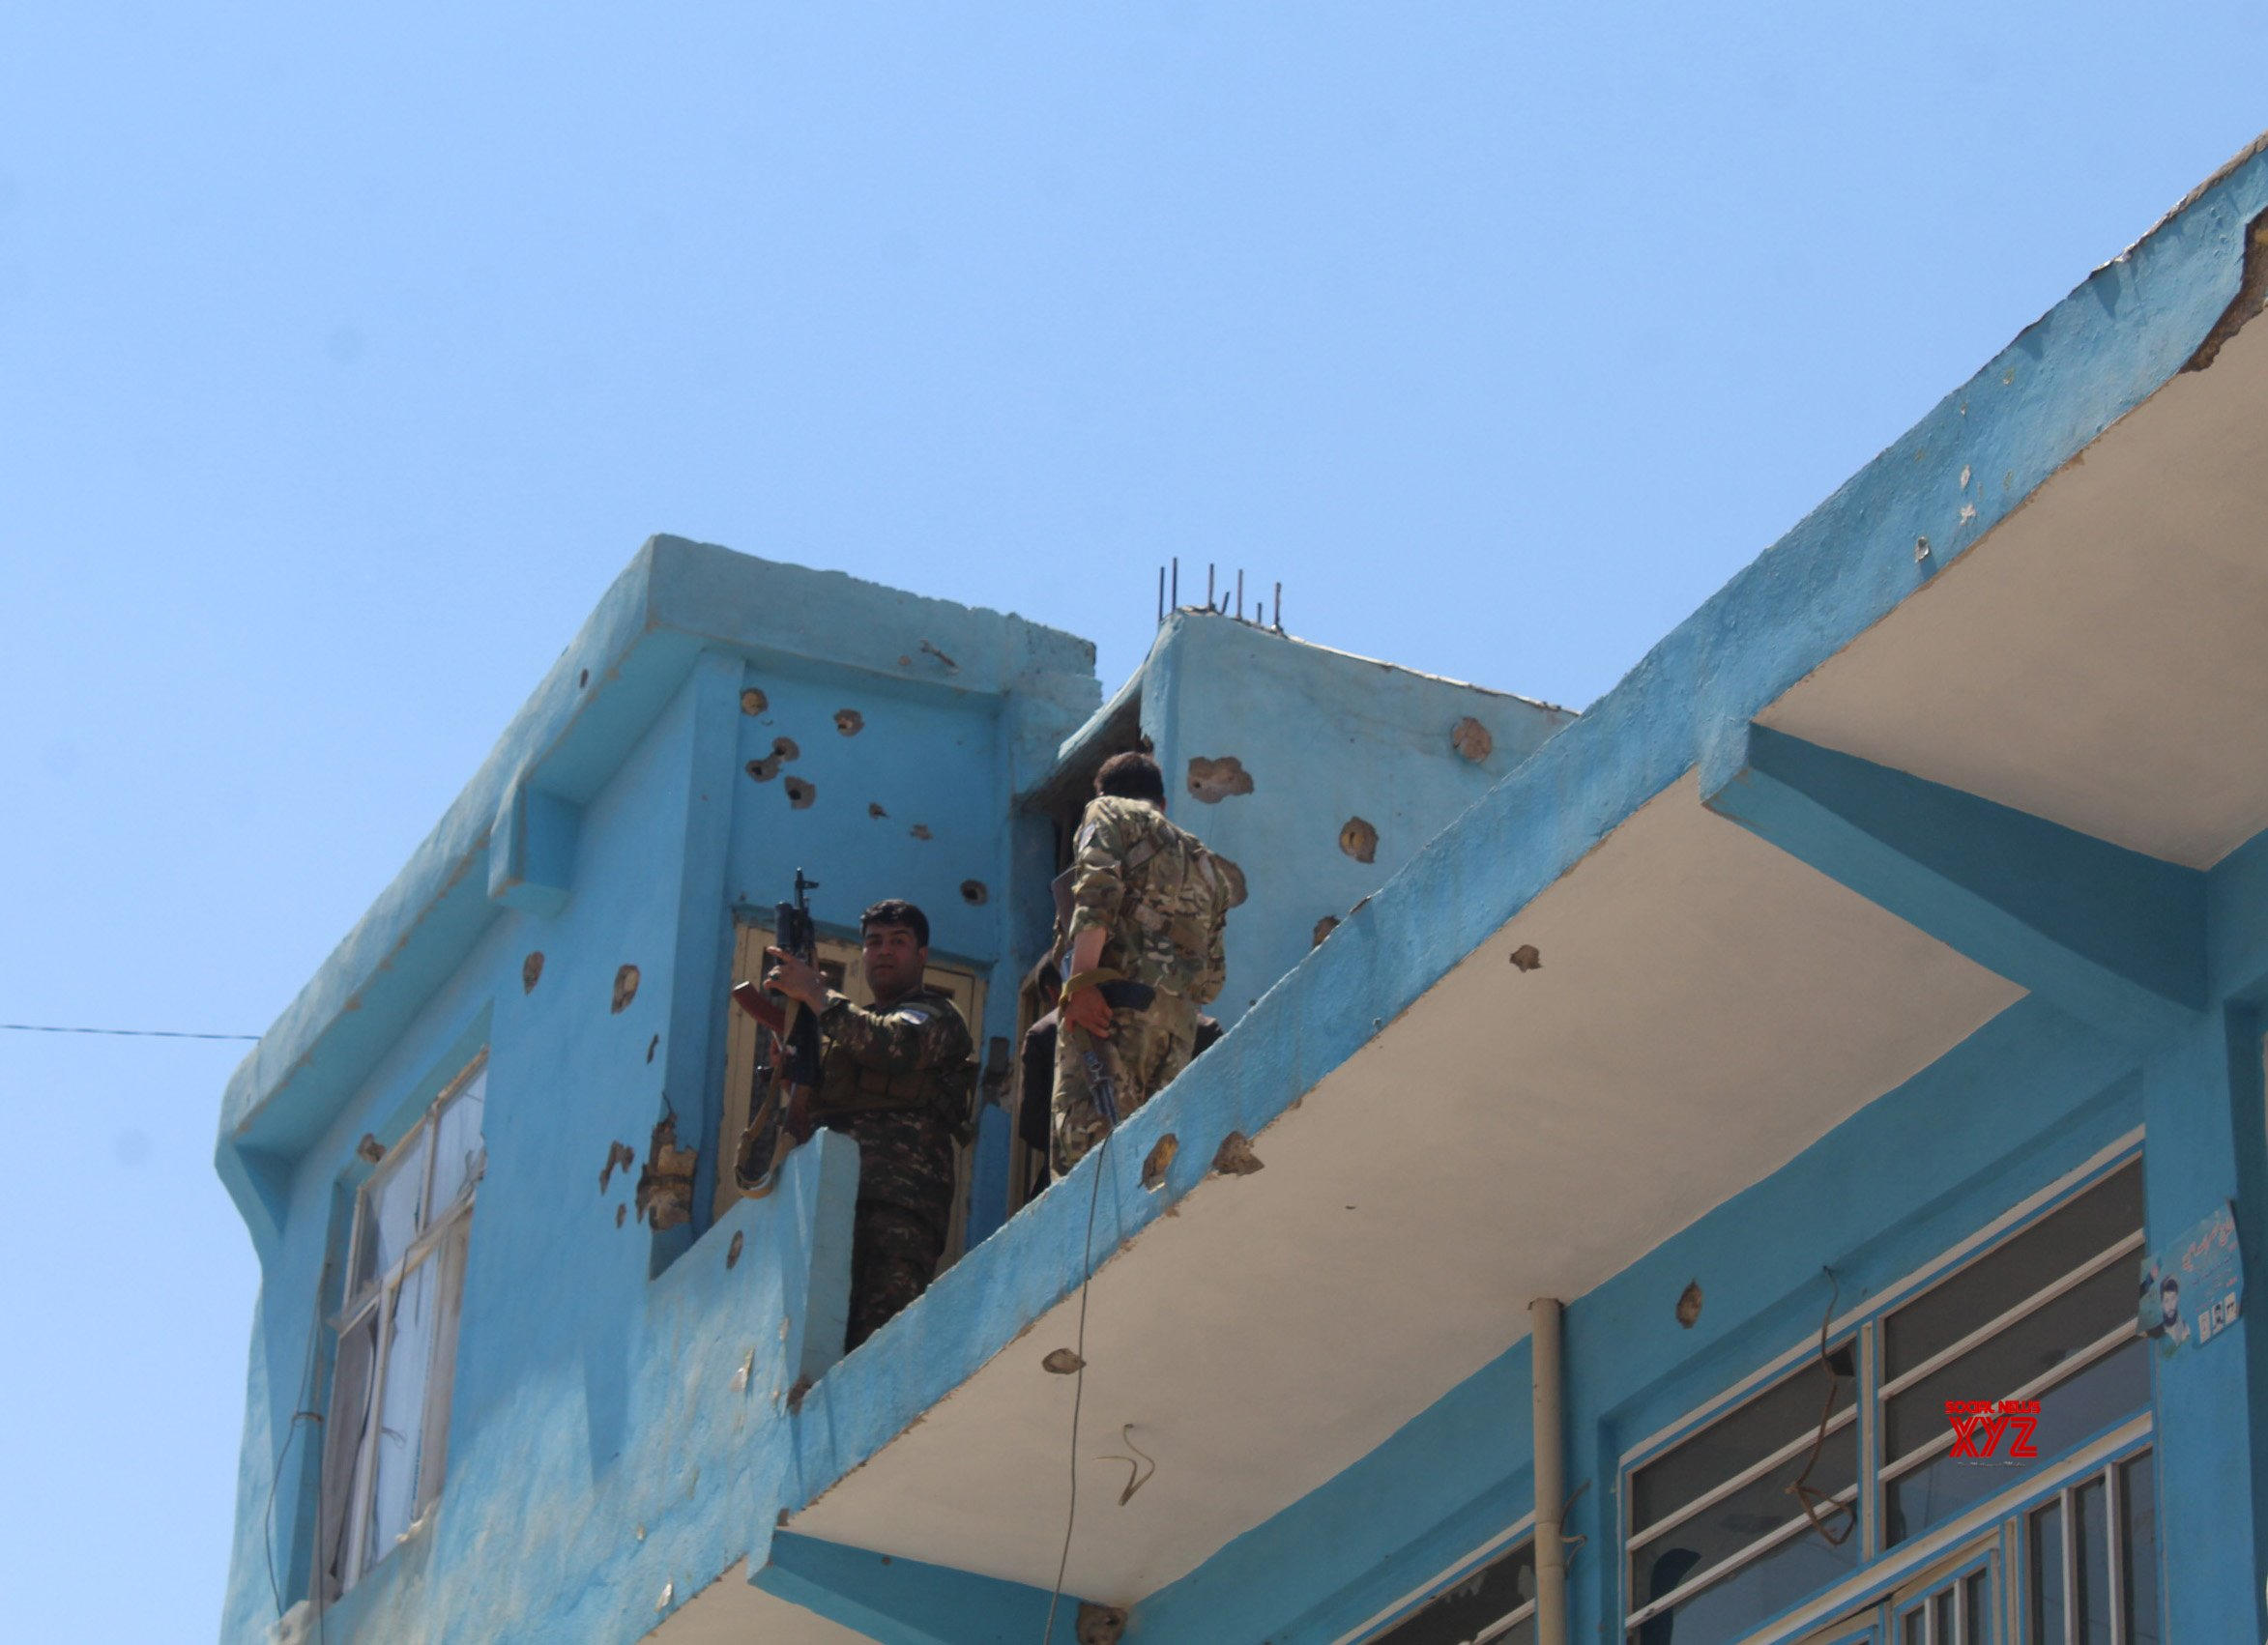 AFGHANISTAN - BADGHIS - TALIBAN ATTACK #Gallery